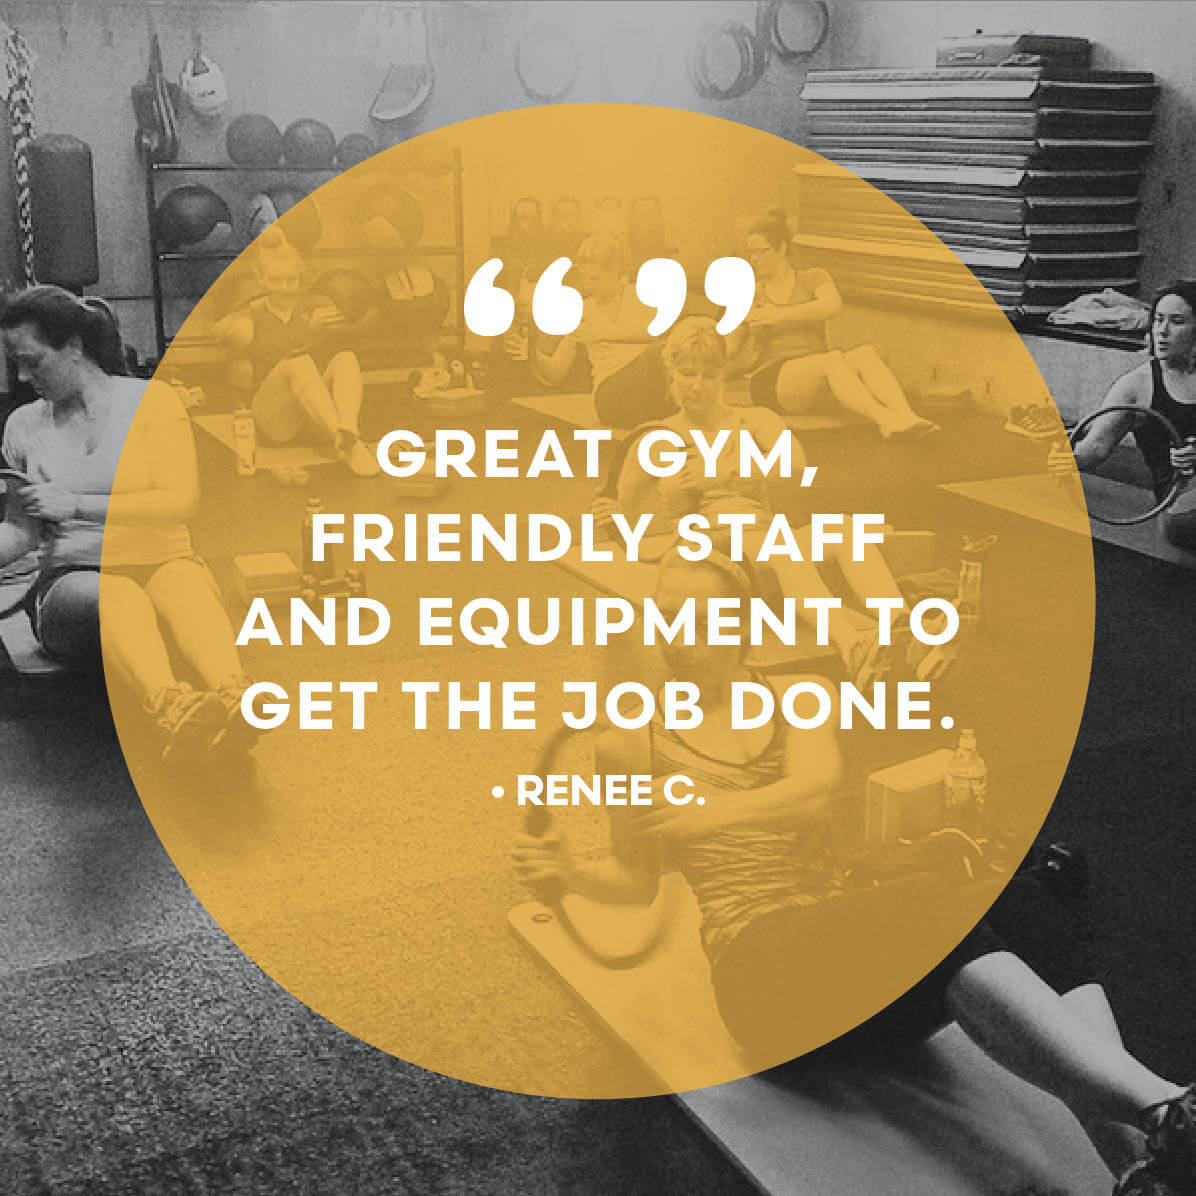 Gym testimonial - Great gym, friendly staff, and equipment to get the job done.